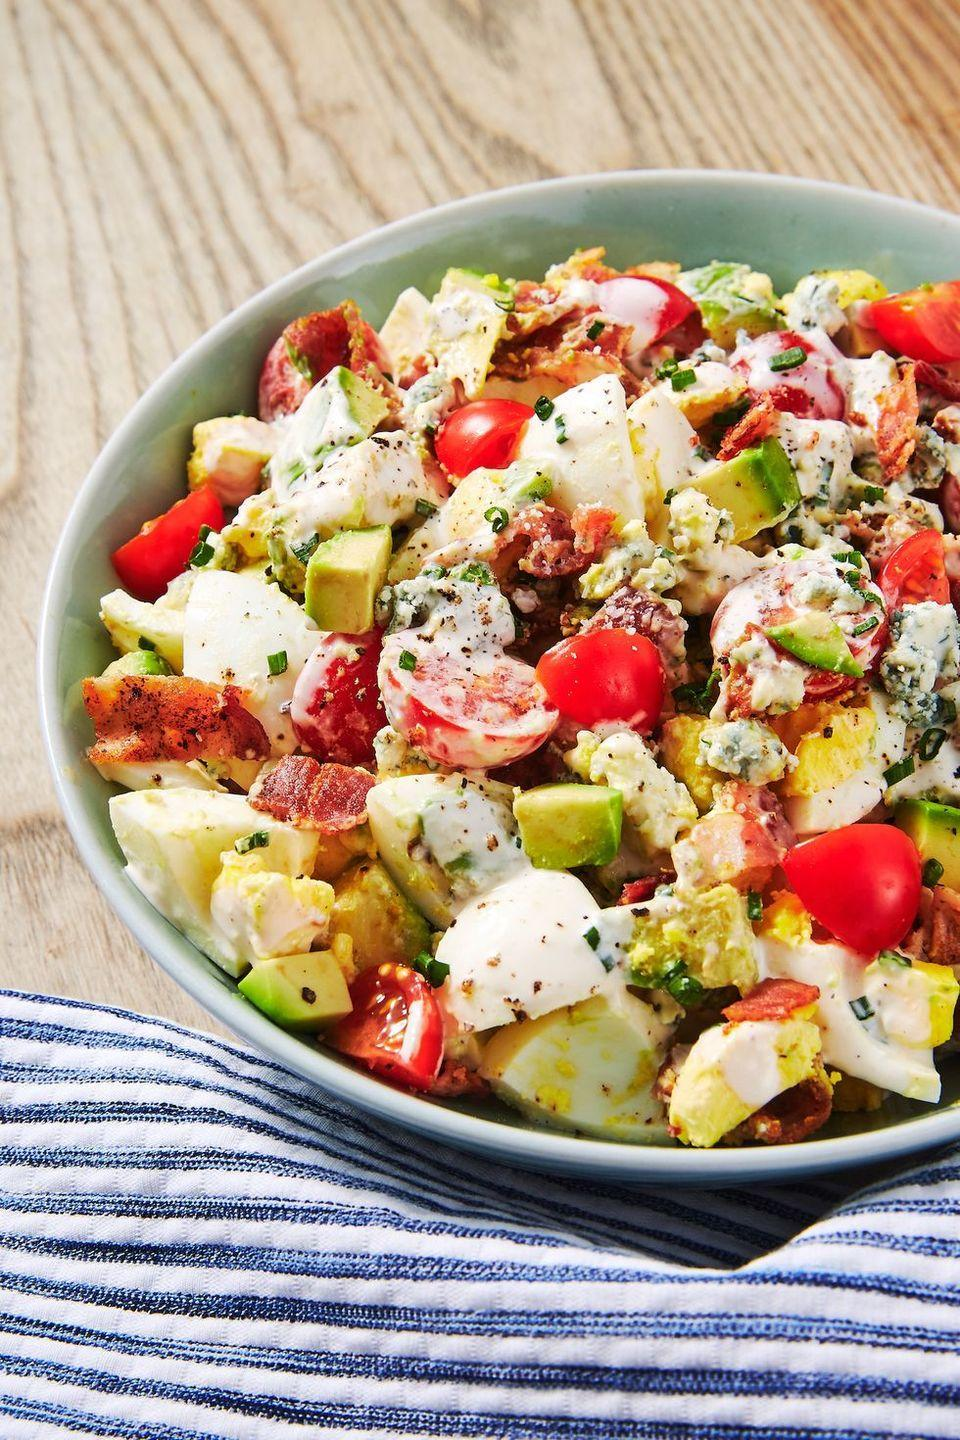 """<p>Yes, Cobb salads have eggs. But this Cobb egg salad doubles up on the protein for a more filling dish, </p><p><strong><em>Get the recipe at <a href=""""https://www.delish.com/cooking/recipe-ideas/a19484613/cobb-egg-salad-recipe/"""" rel=""""nofollow noopener"""" target=""""_blank"""" data-ylk=""""slk:Delish"""" class=""""link rapid-noclick-resp"""">Delish</a>. </em></strong><br></p>"""